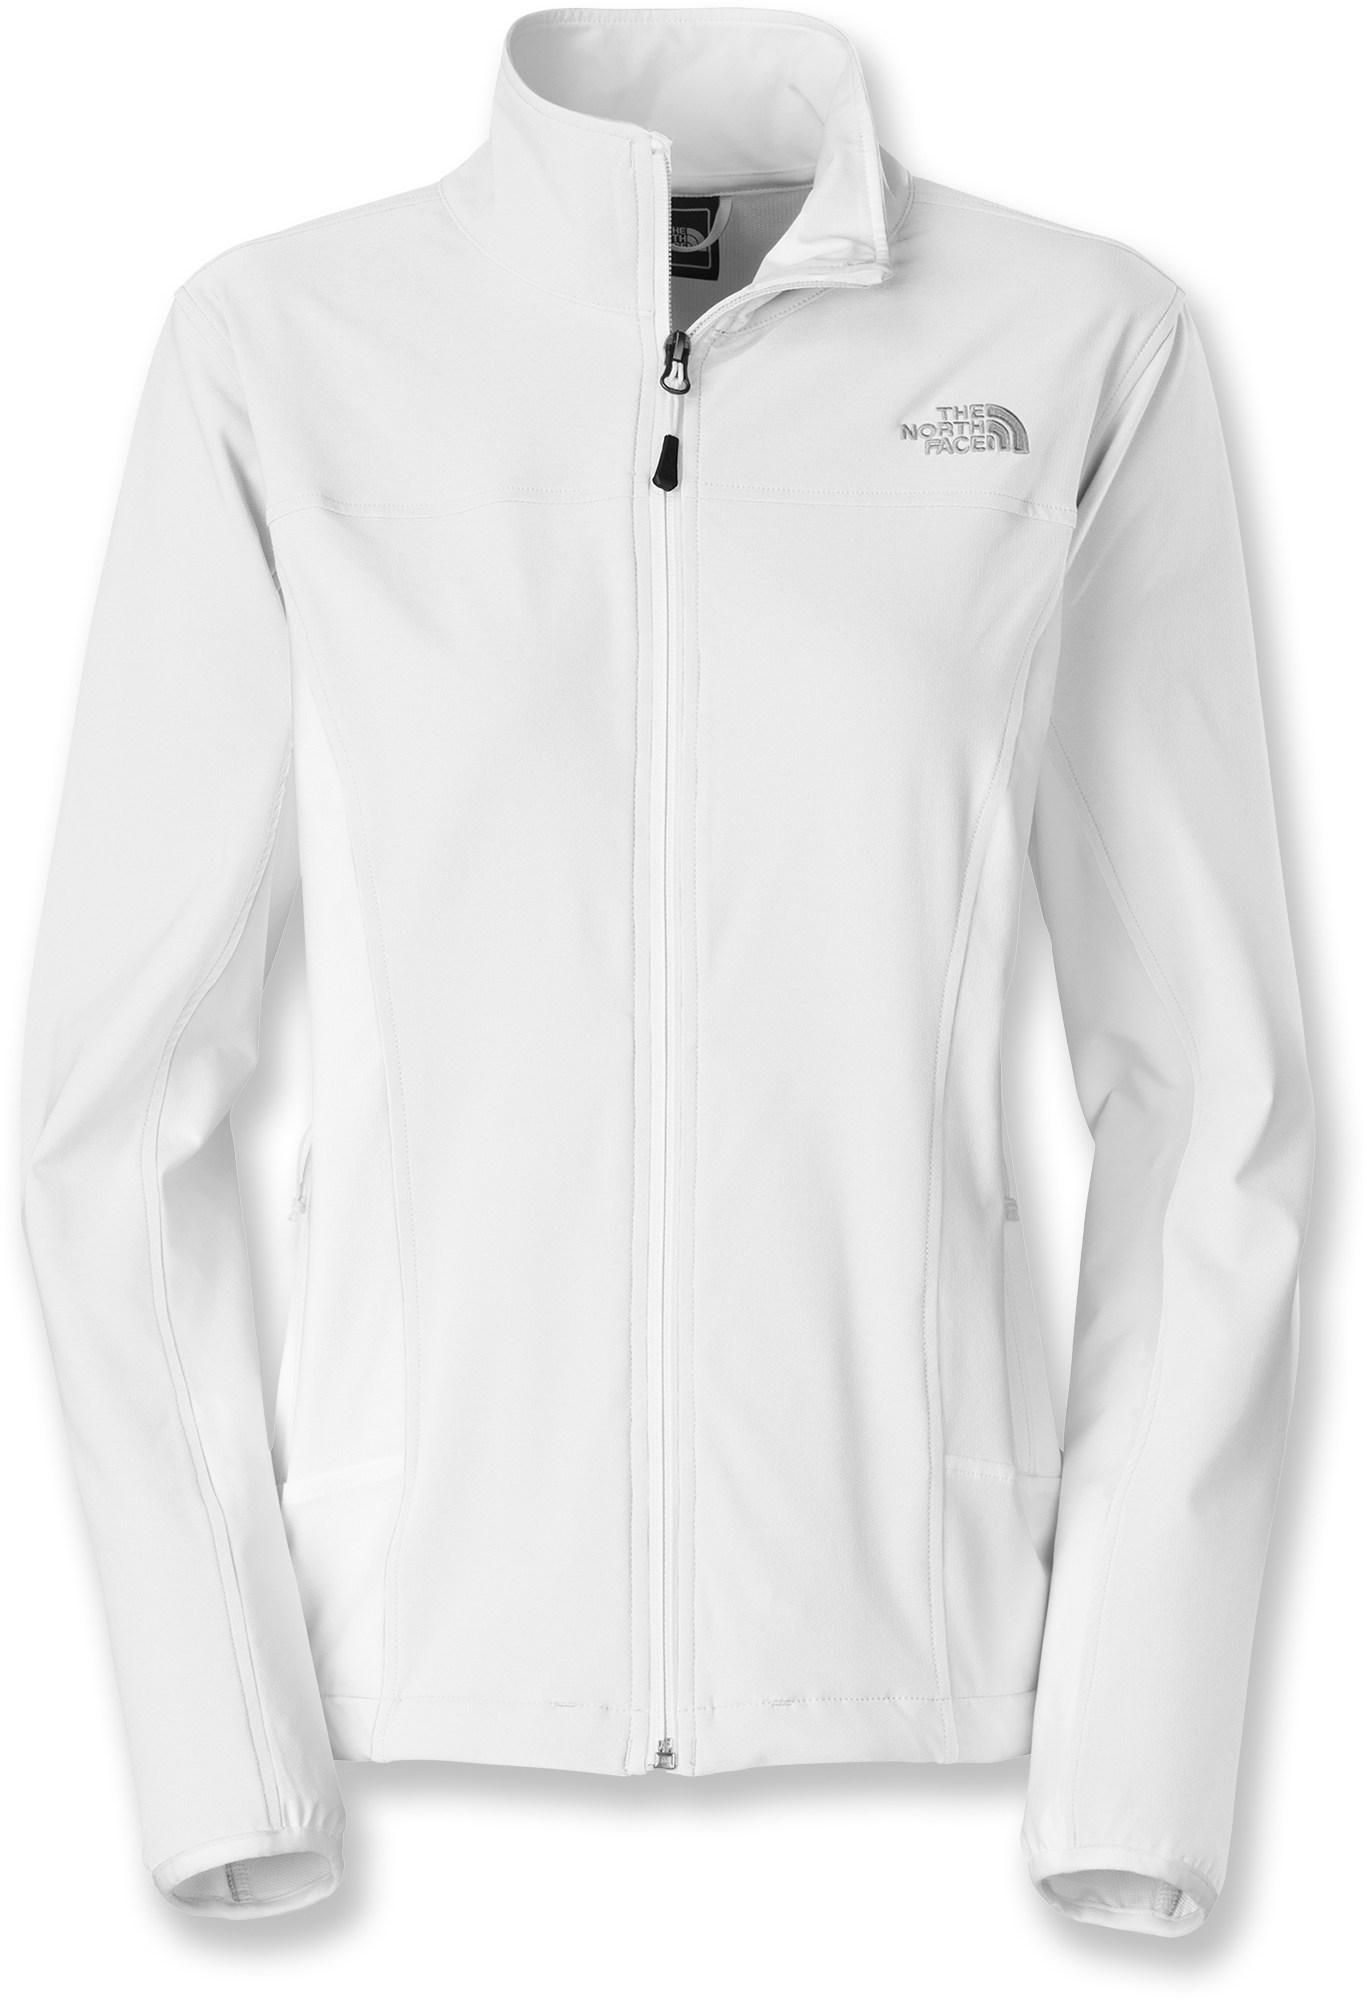 d3890a37a Nimble Jacket - Women's | Gifts for Outdoorsy Moms | Jackets for ...